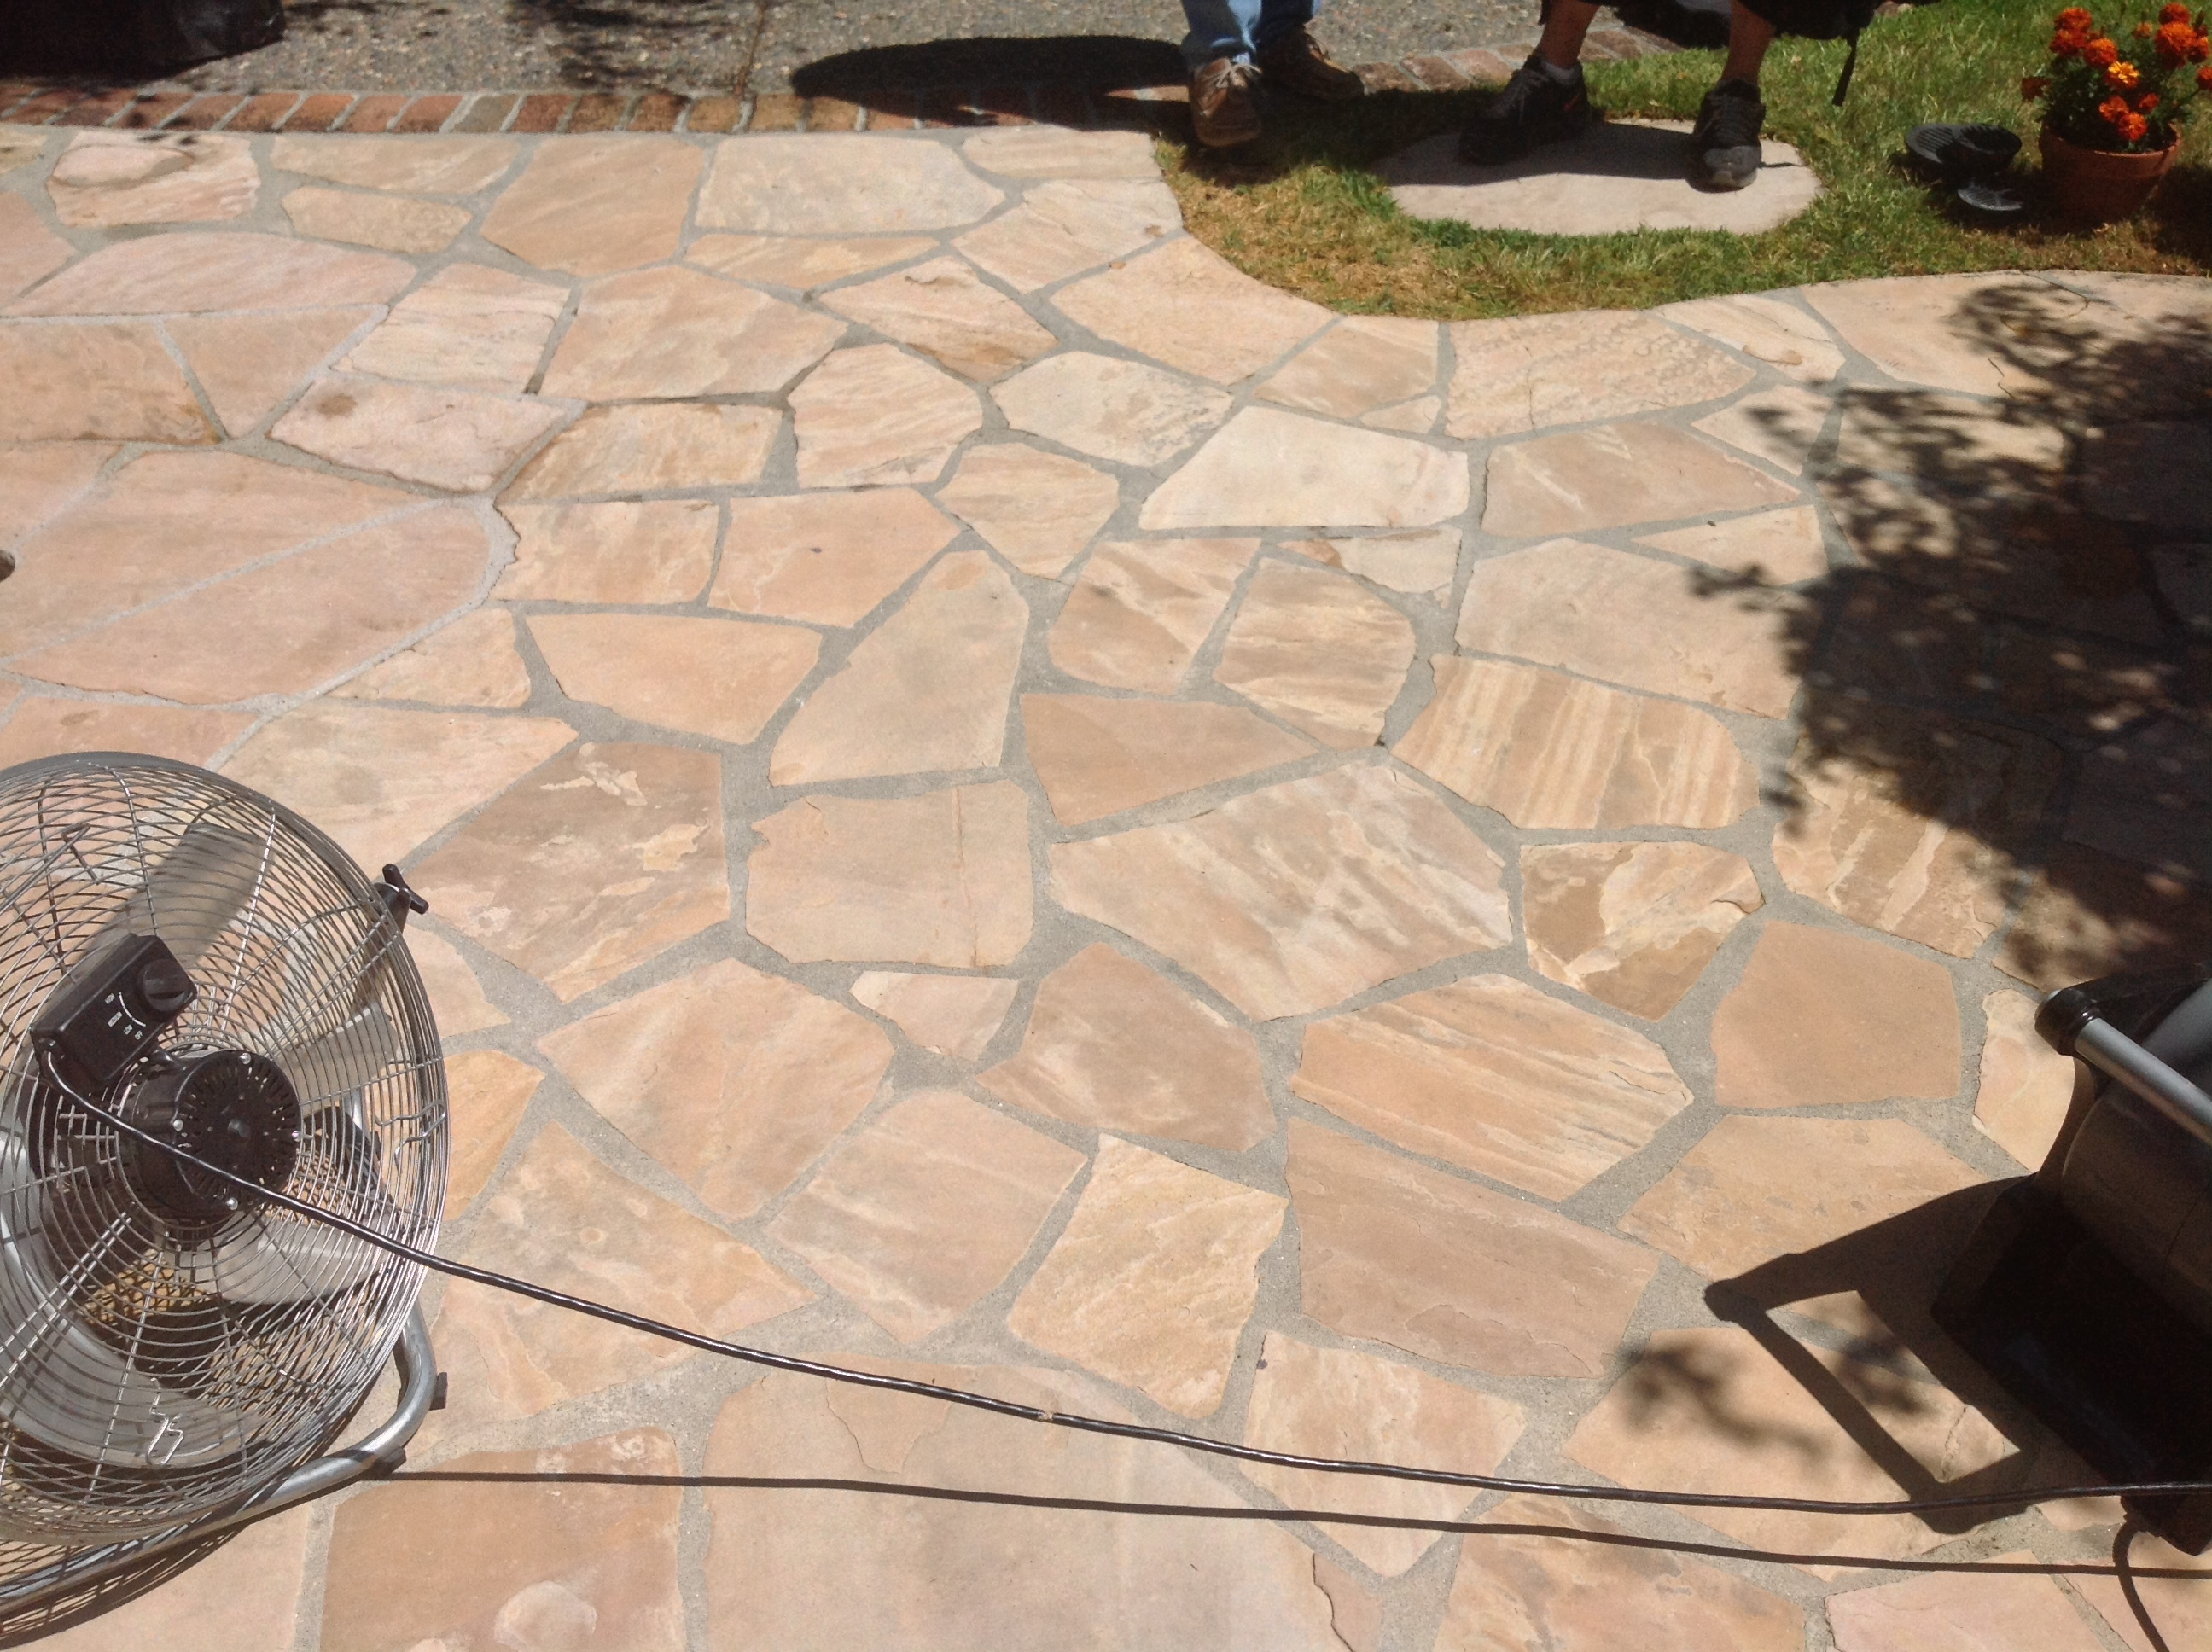 patio stone patios polymeric between put of flagstone to luxury sand slate dust joints what or